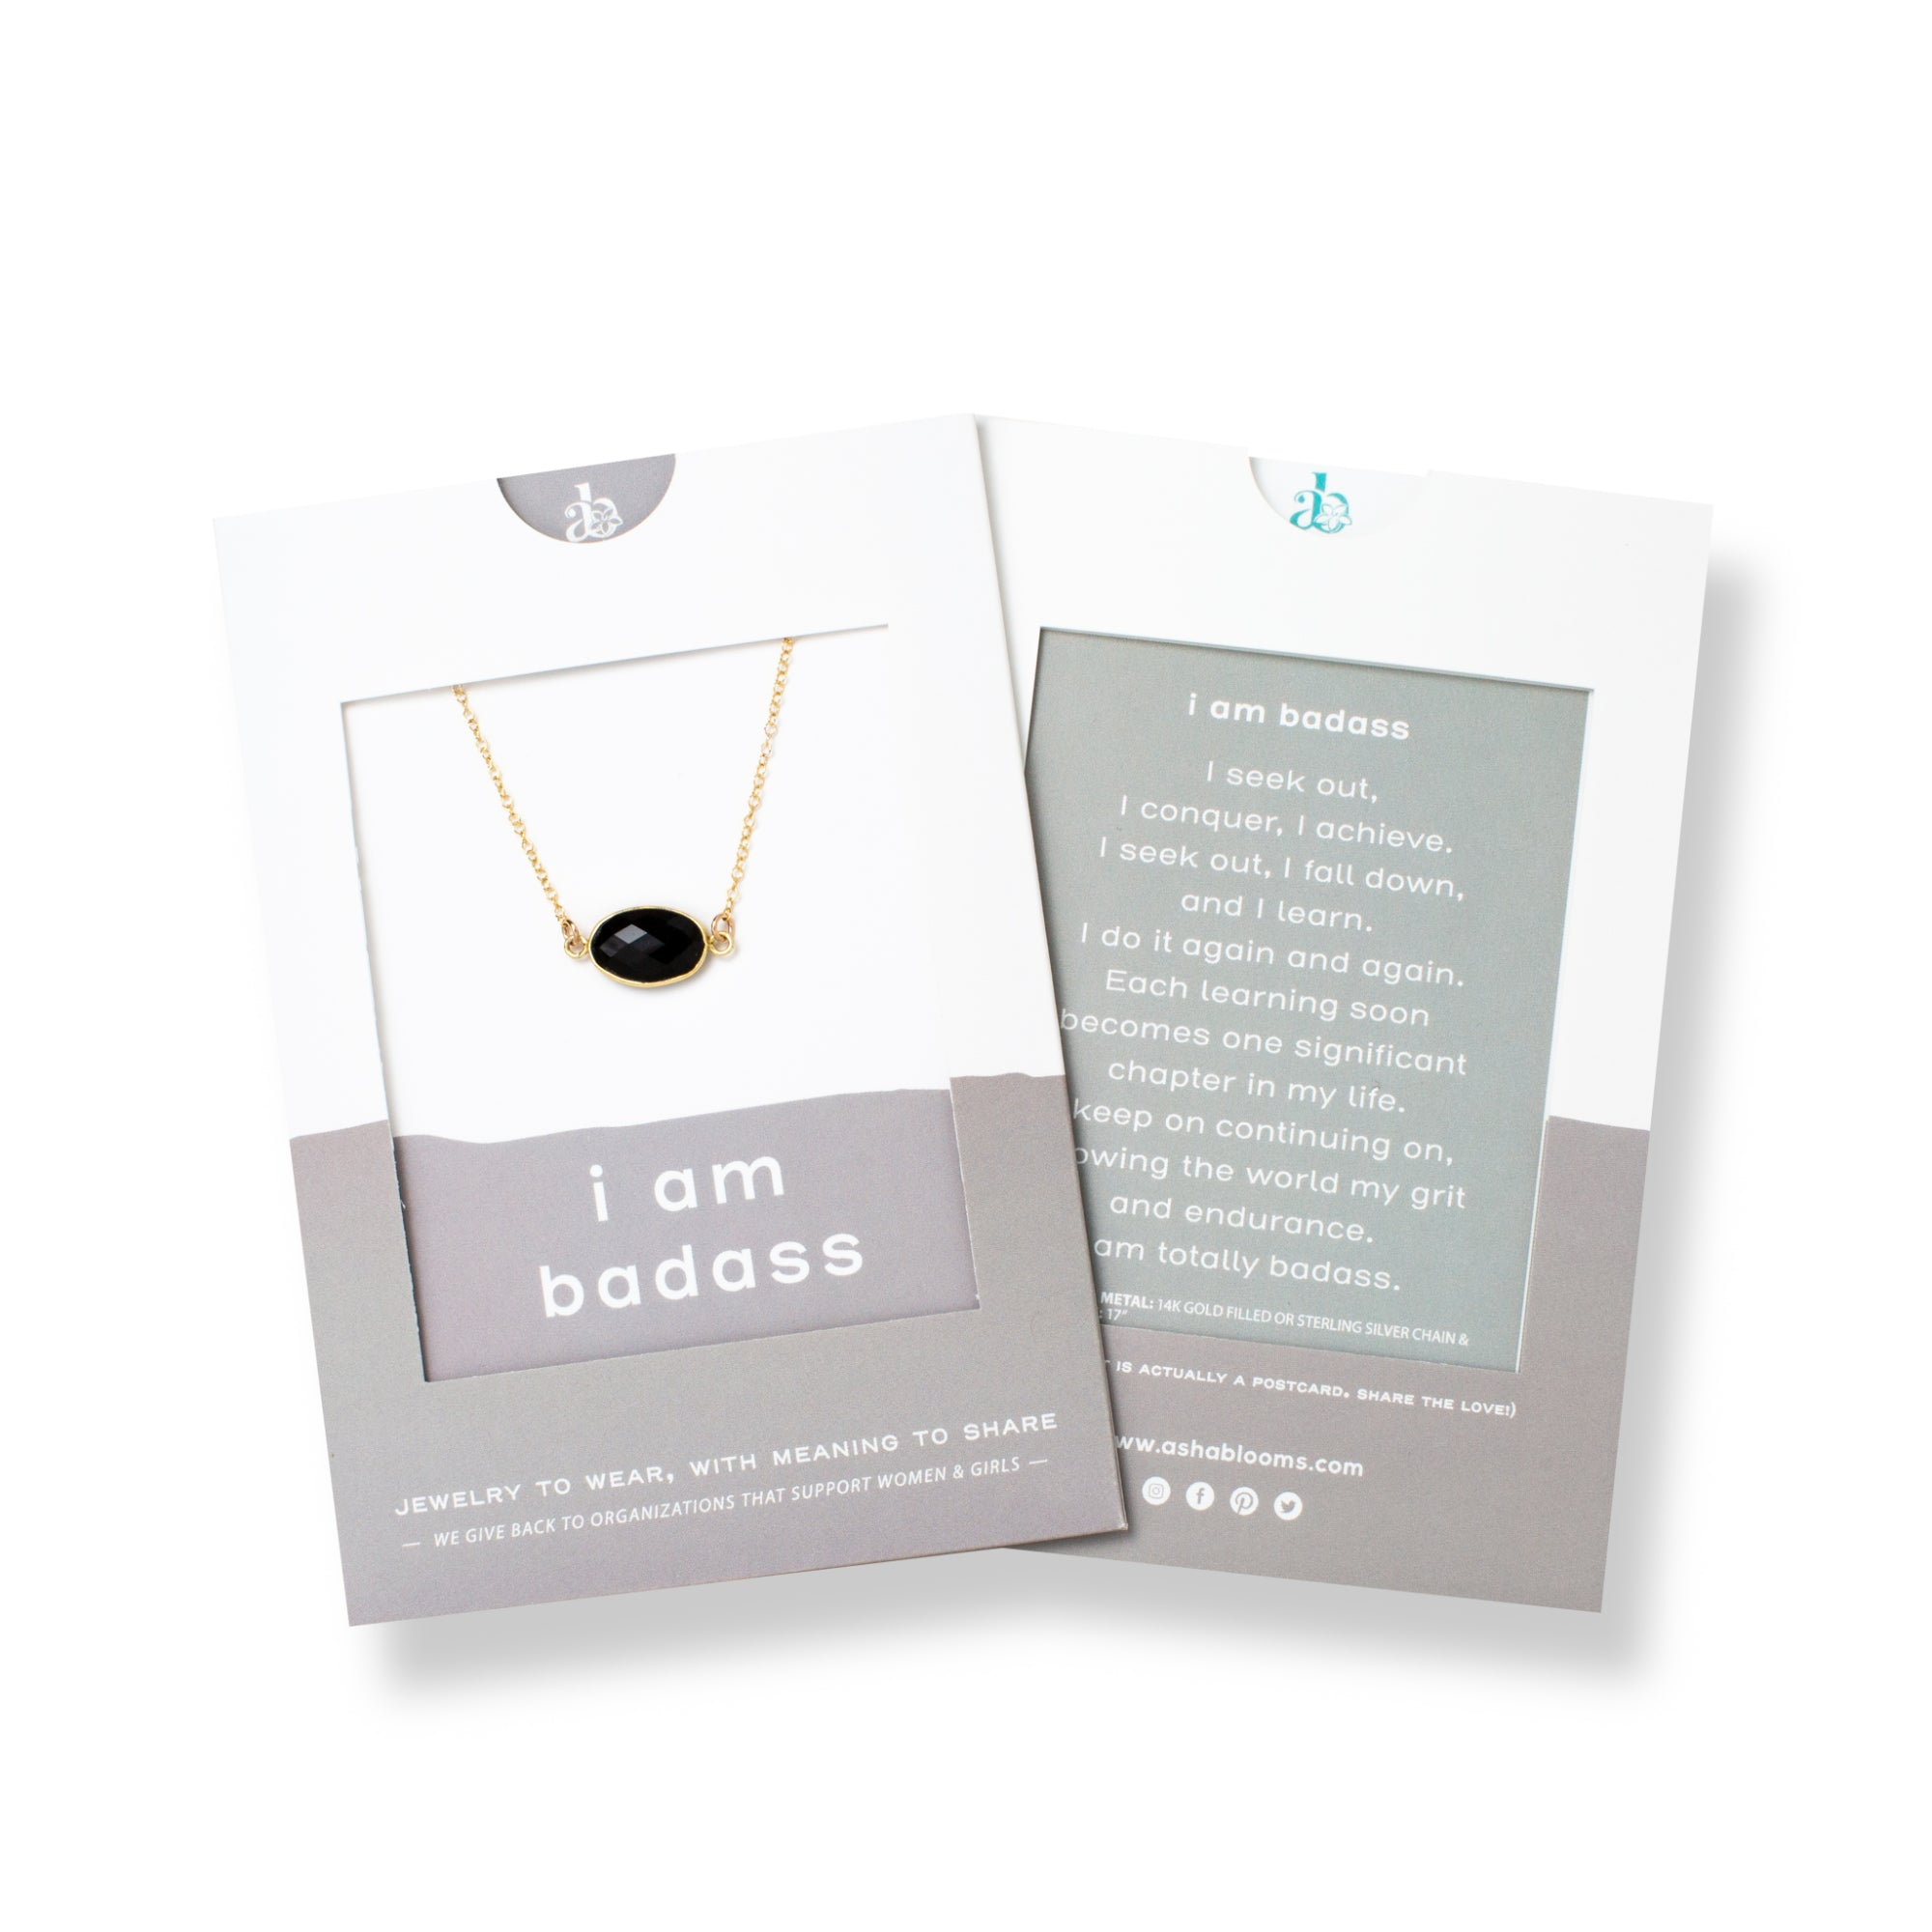 Oval-shaped Spinel and Gold Necklace 'I Am Badass' in Gray Gift Message Sleeve Packaging Photo by Asha Blooms